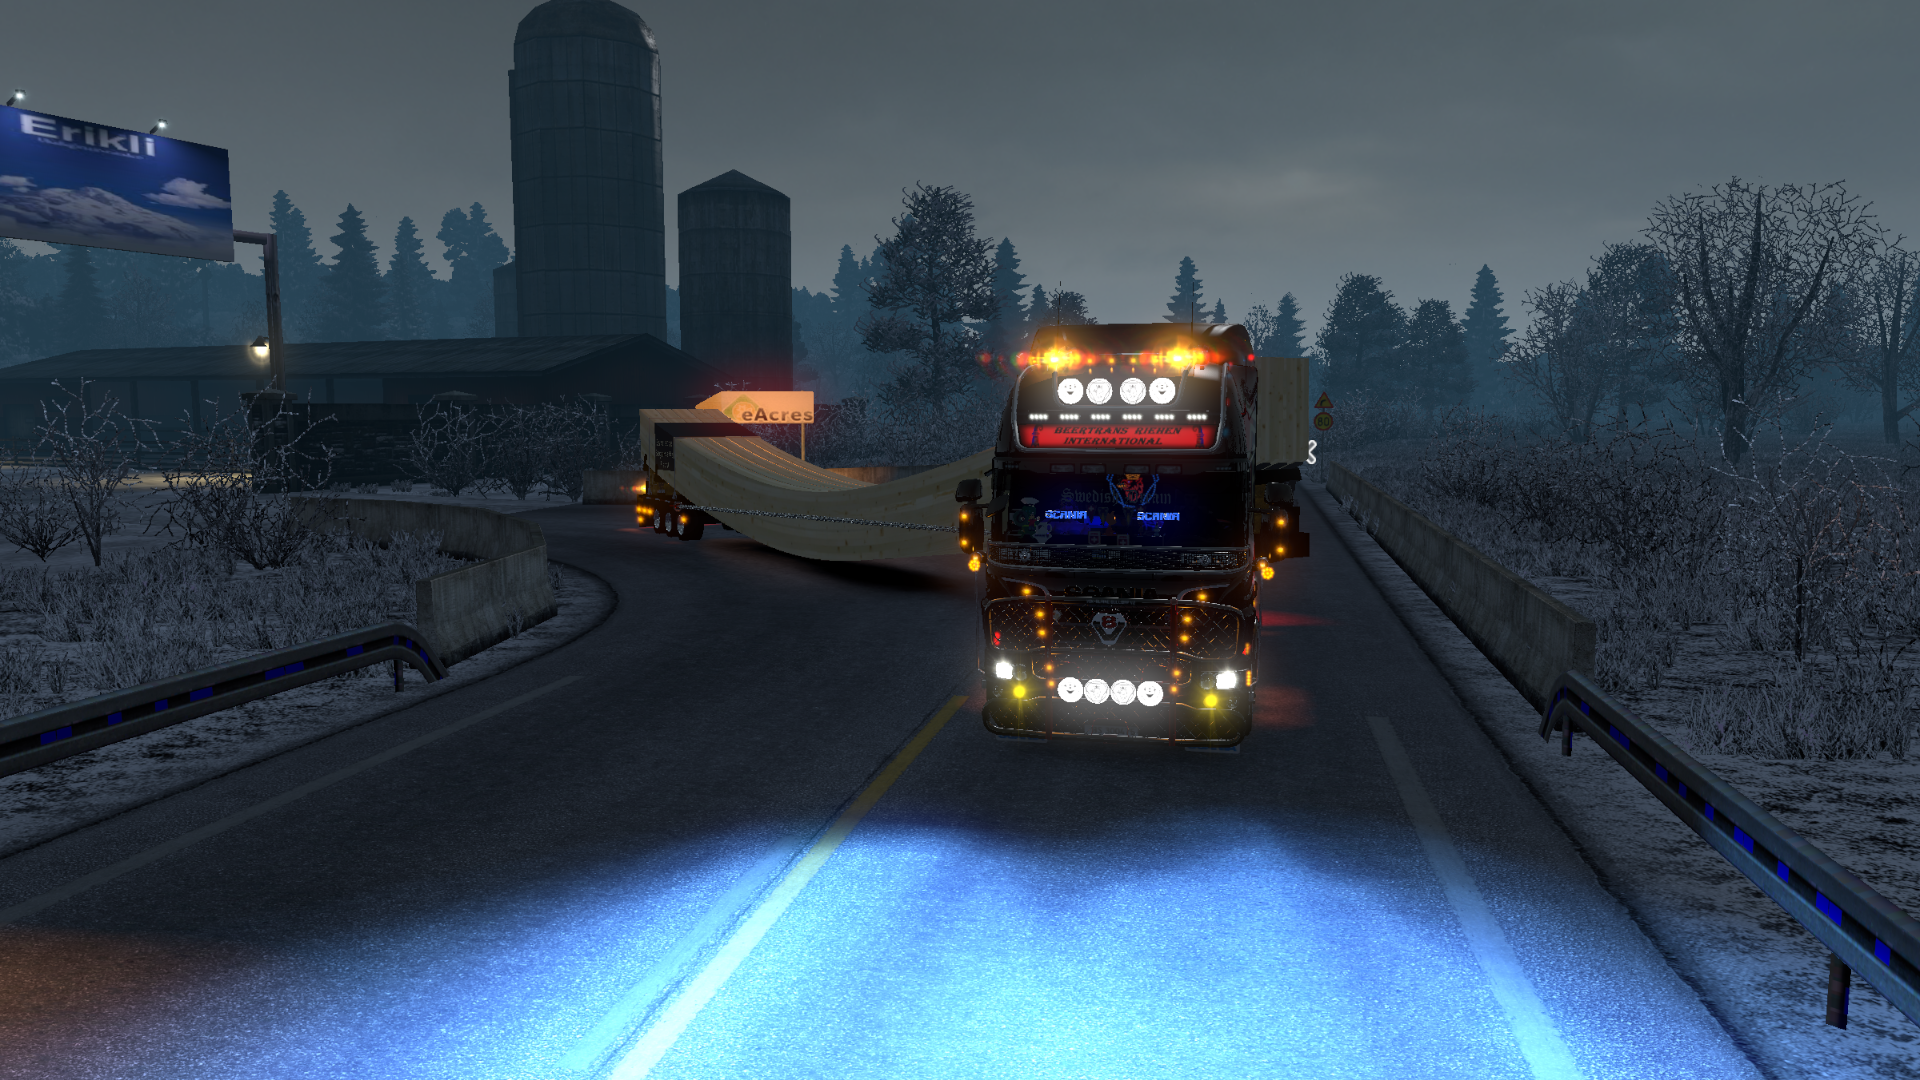 Screenshots Ets2_000494bu7p